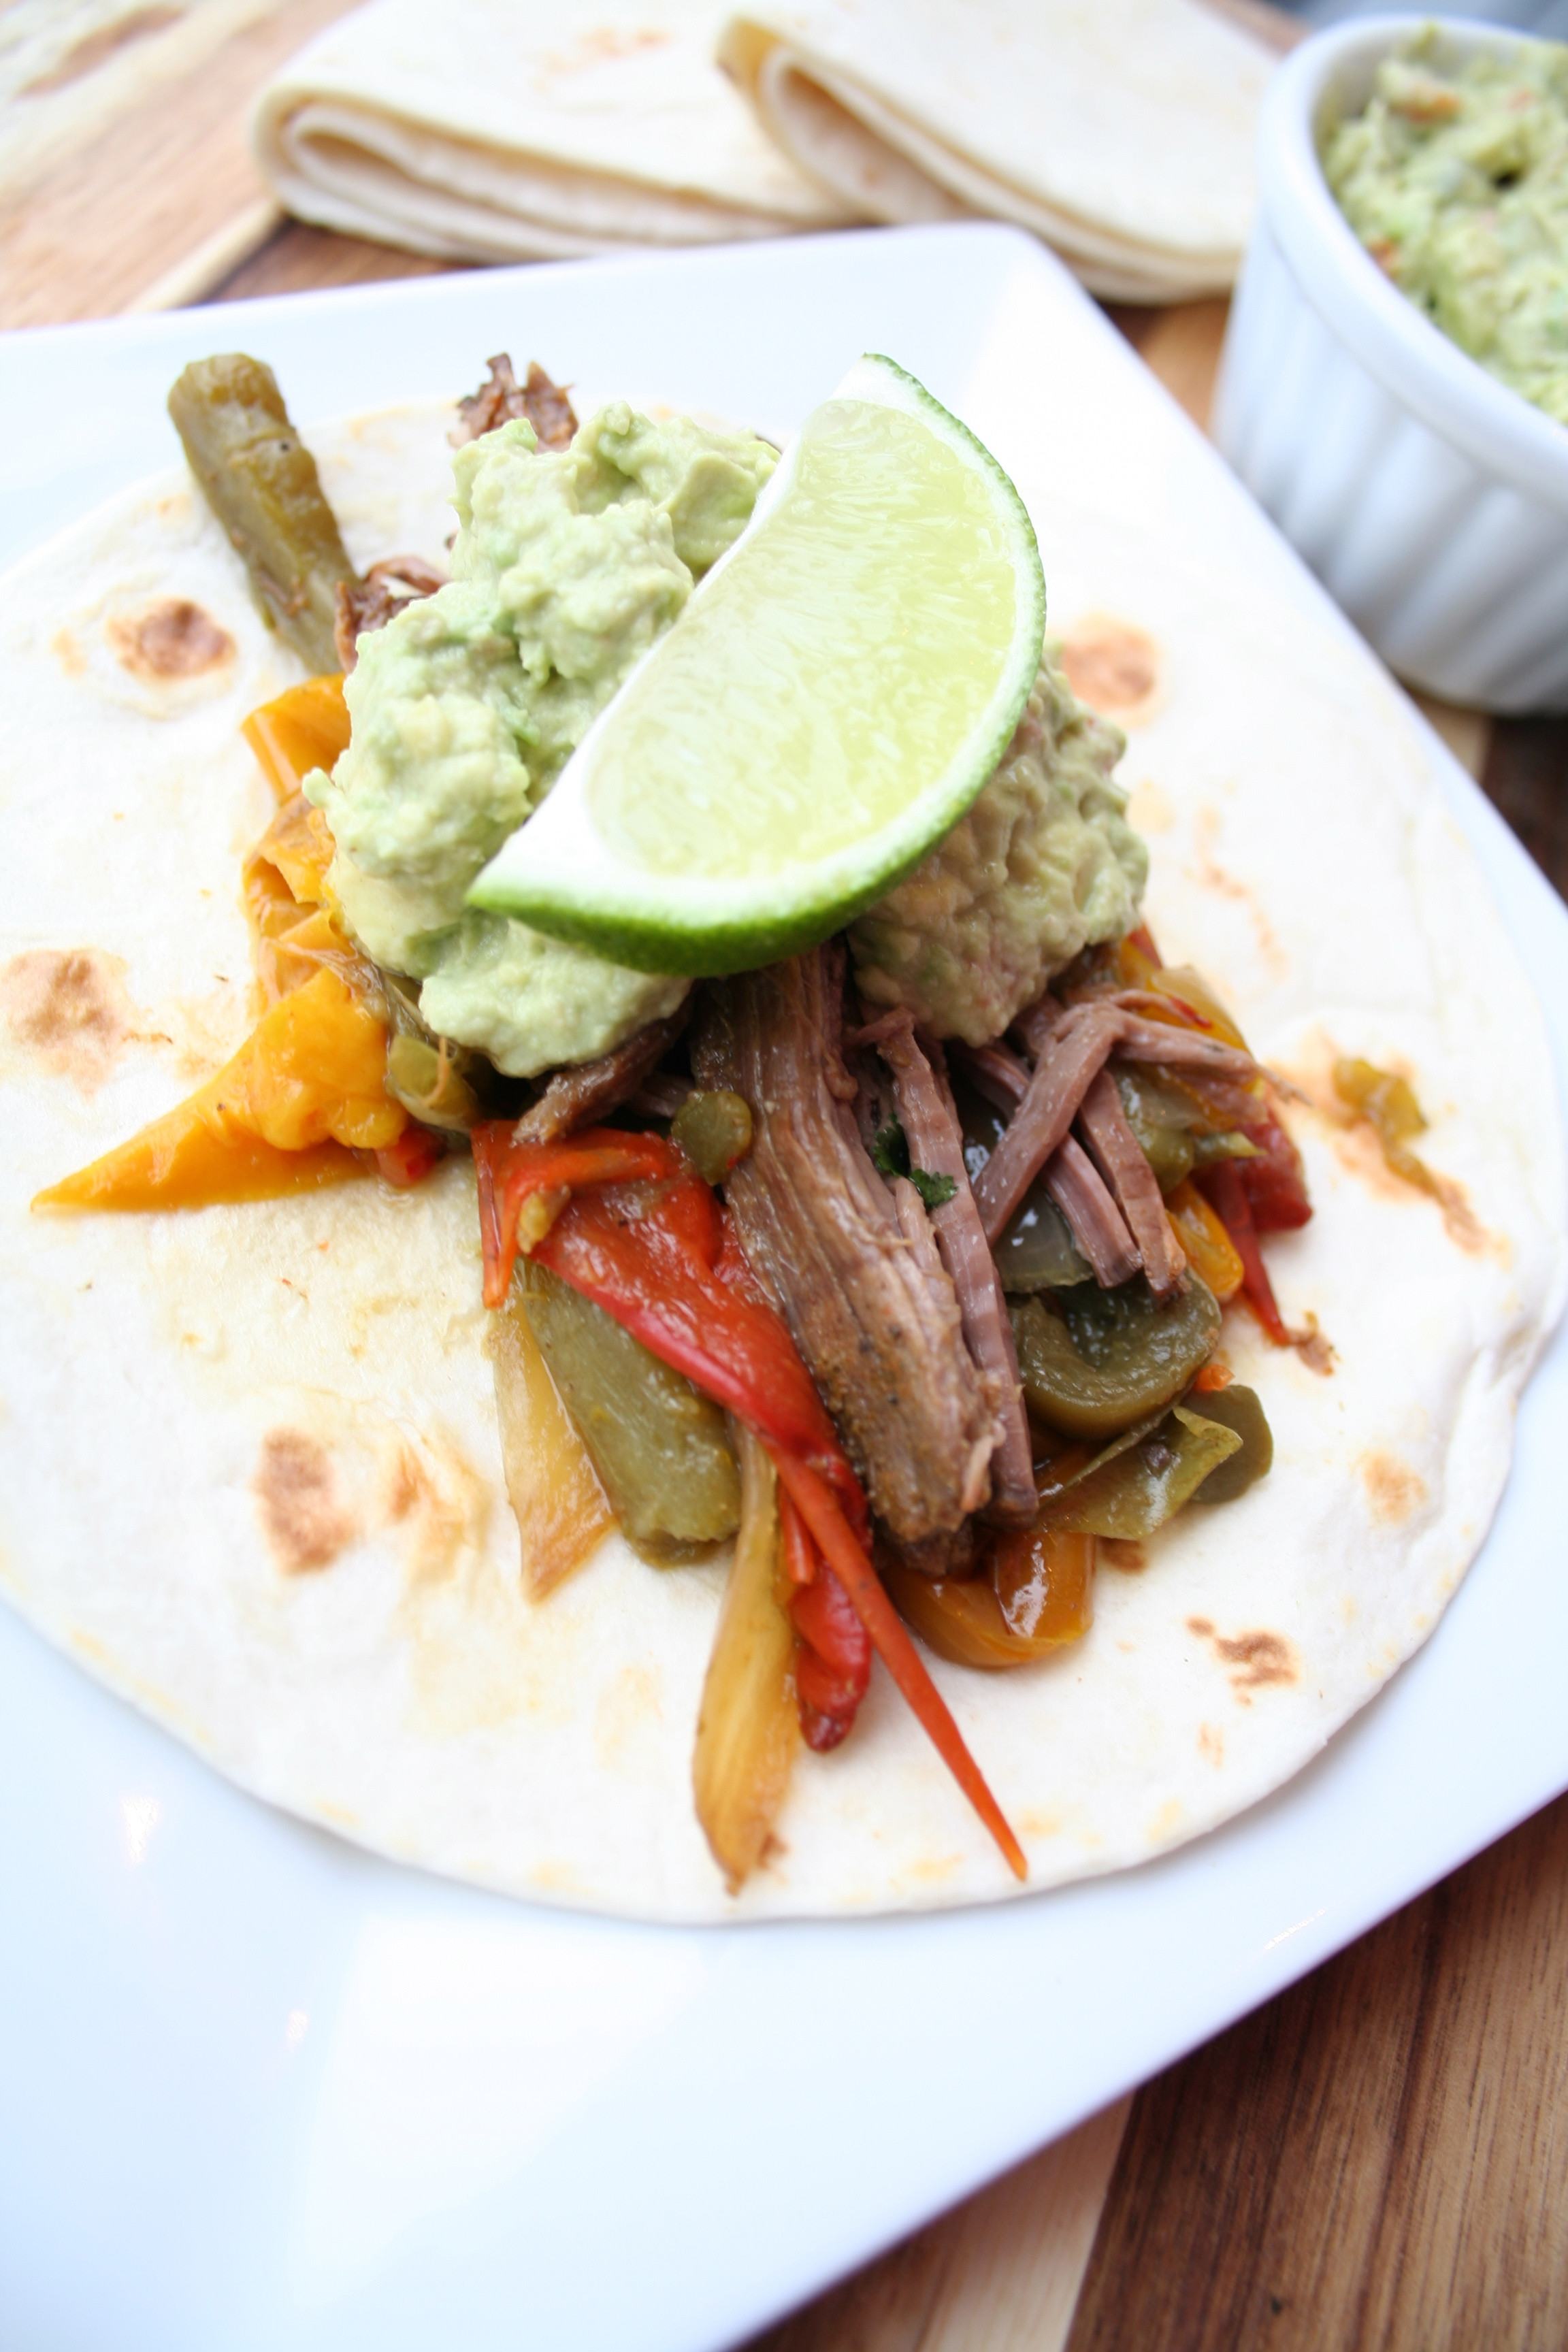 Slow Cooker Steak Fajitas  Slow Cooker Steak Fajitas The Magical Slow CookerThe